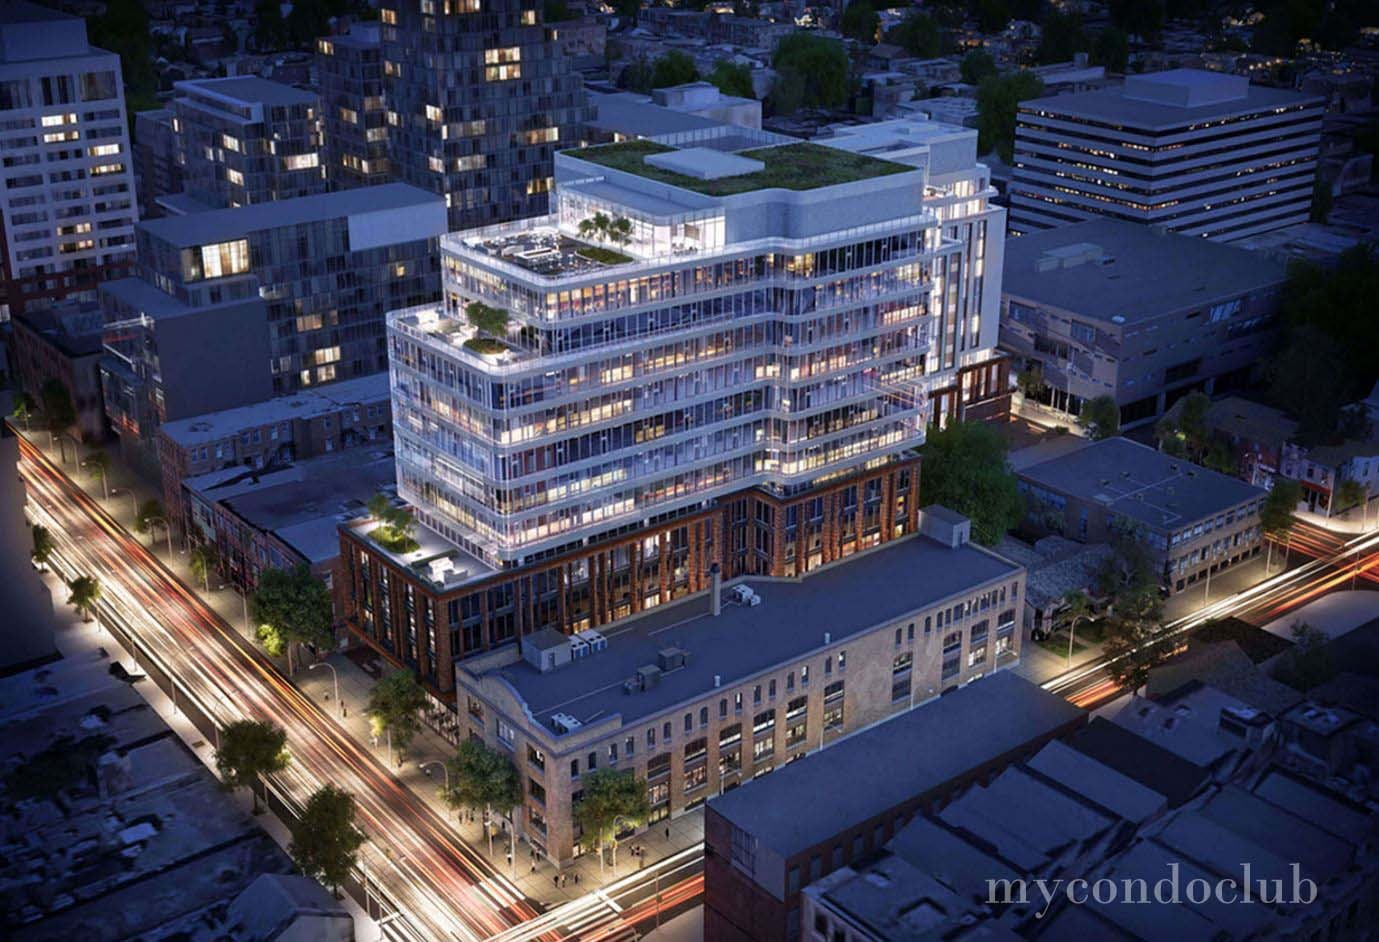 kingly-condos-620KingStreetWestTorontoONriocan-alliedpropertiescondo-mycondoclub